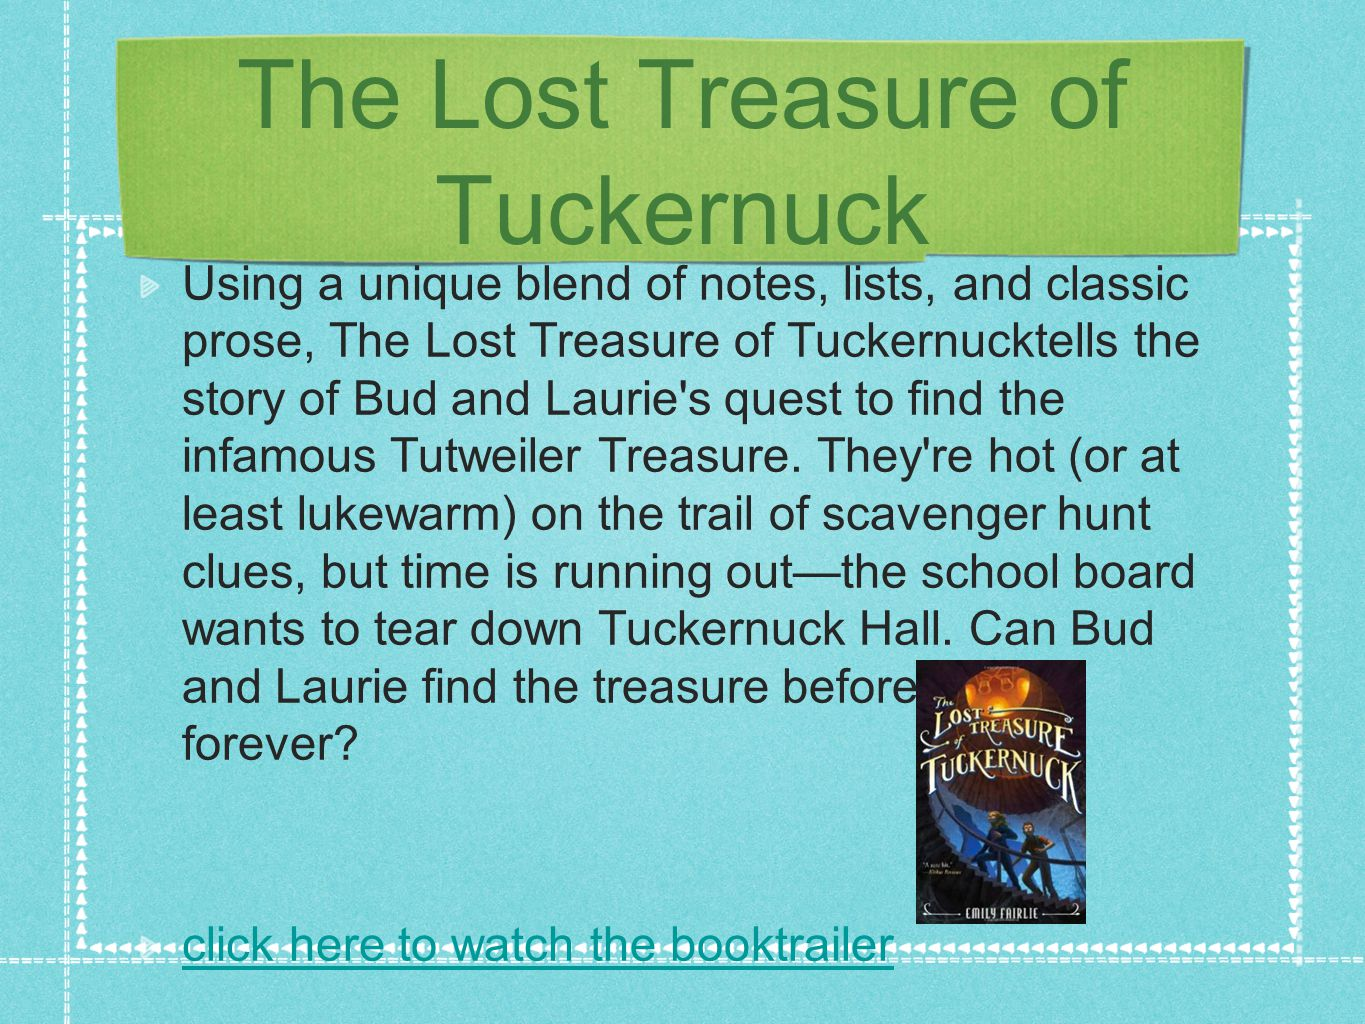 The Lost Treasure of Tuckernuck Using a unique blend of notes, lists, and classic prose, The Lost Treasure of Tuckernucktells the story of Bud and Laurie s quest to find the infamous Tutweiler Treasure.